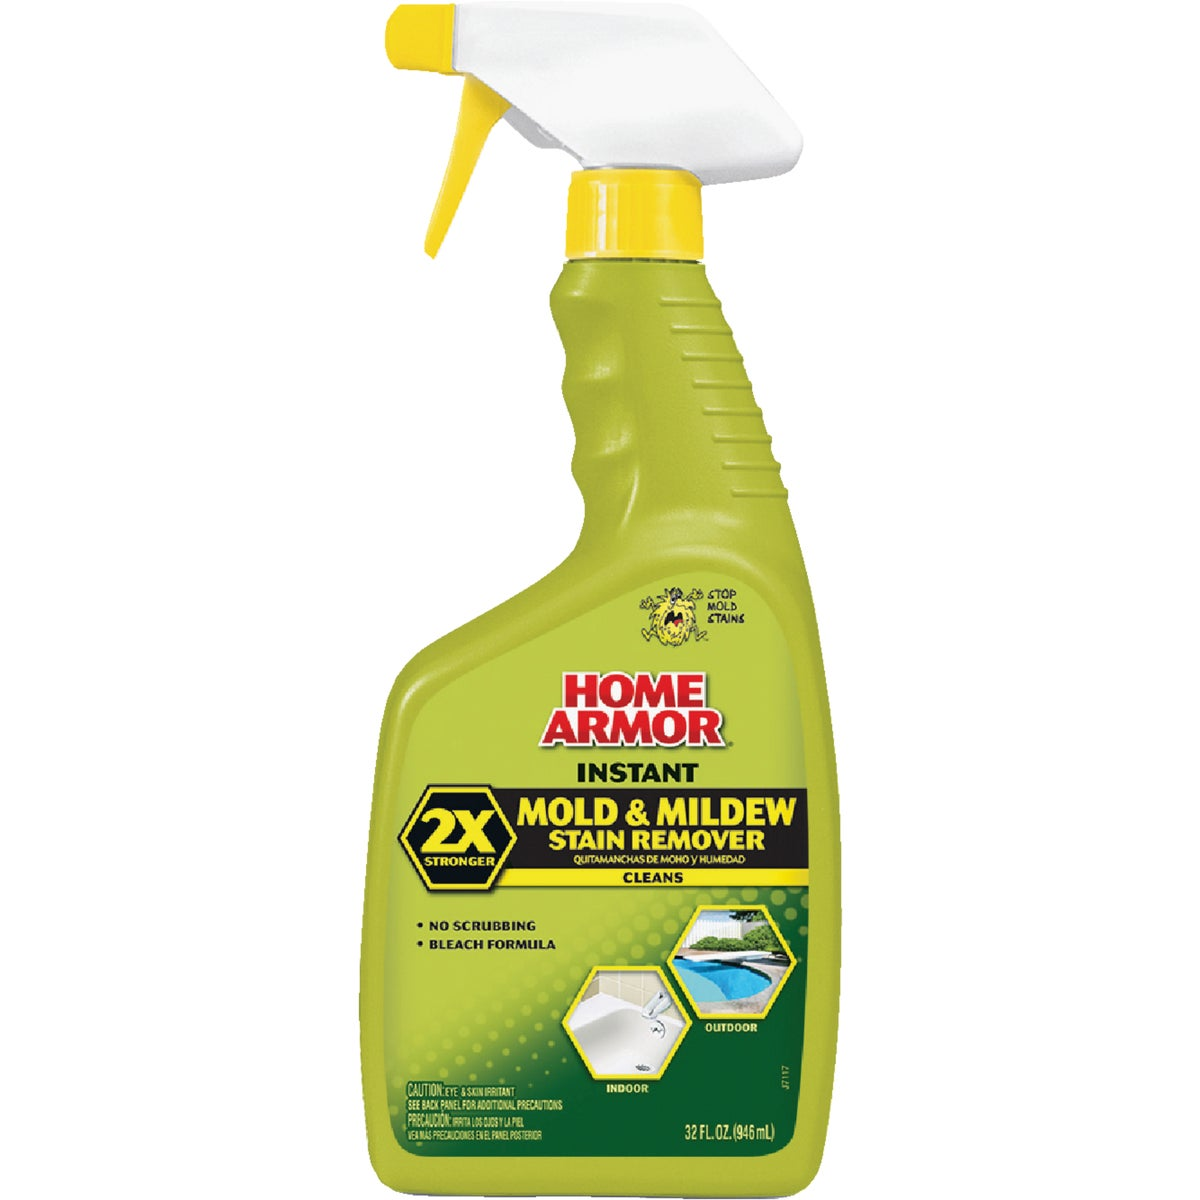 32OZ MLDEW STAIN REMOVER - FG502 by Wm Barr